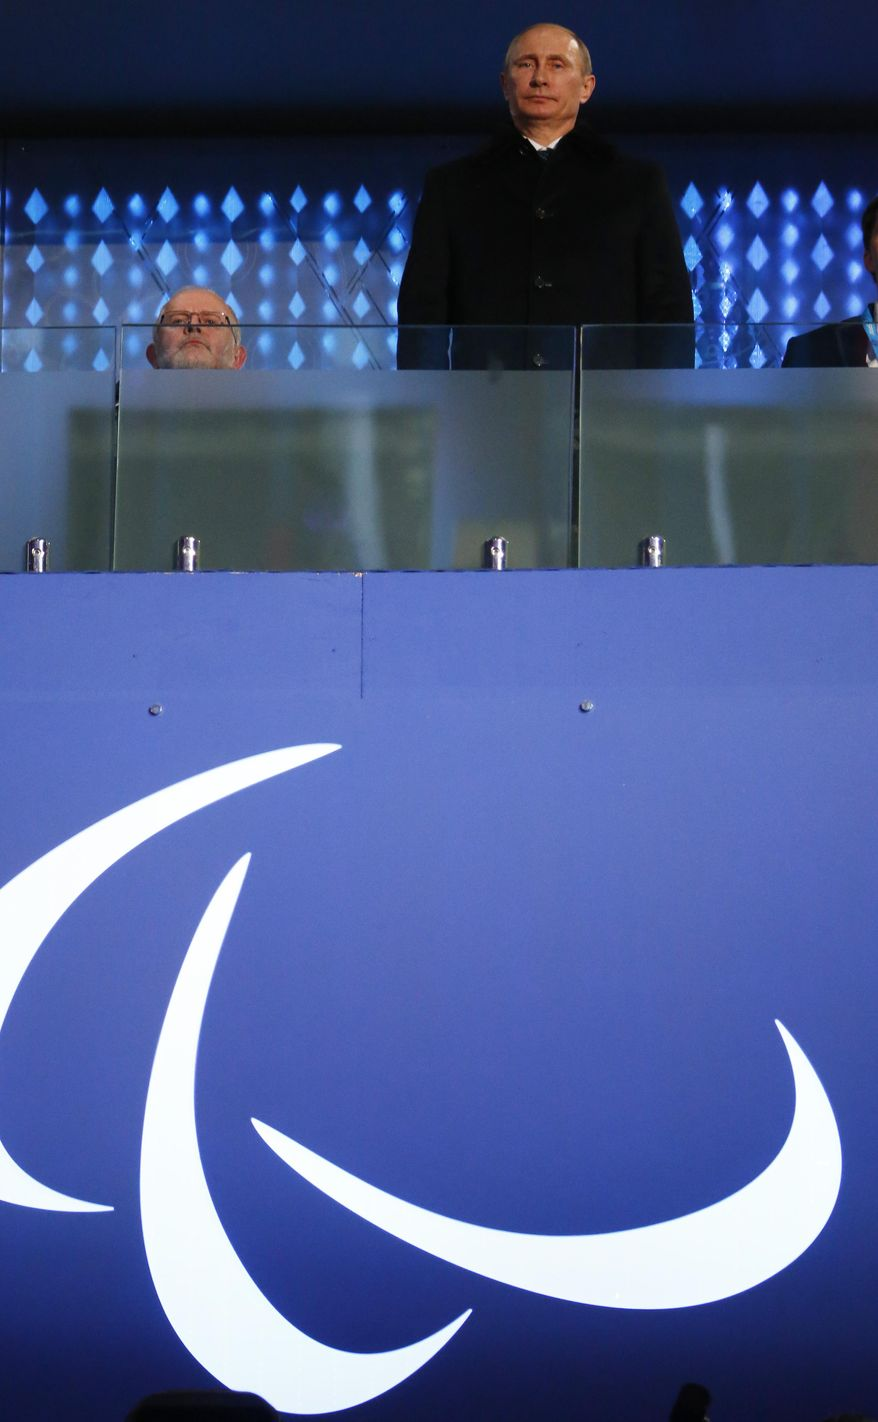 Russian President Vladimir Putin, right, and Sir Philip Craven, President of the International Paralympic Committee attend the opening ceremony of the 2014 Winter Paralympics at the Fisht Olympic stadium  in Sochi, Russia, Friday, March 7, 2014.  (AP Photo/Dmitry Lovetsky)